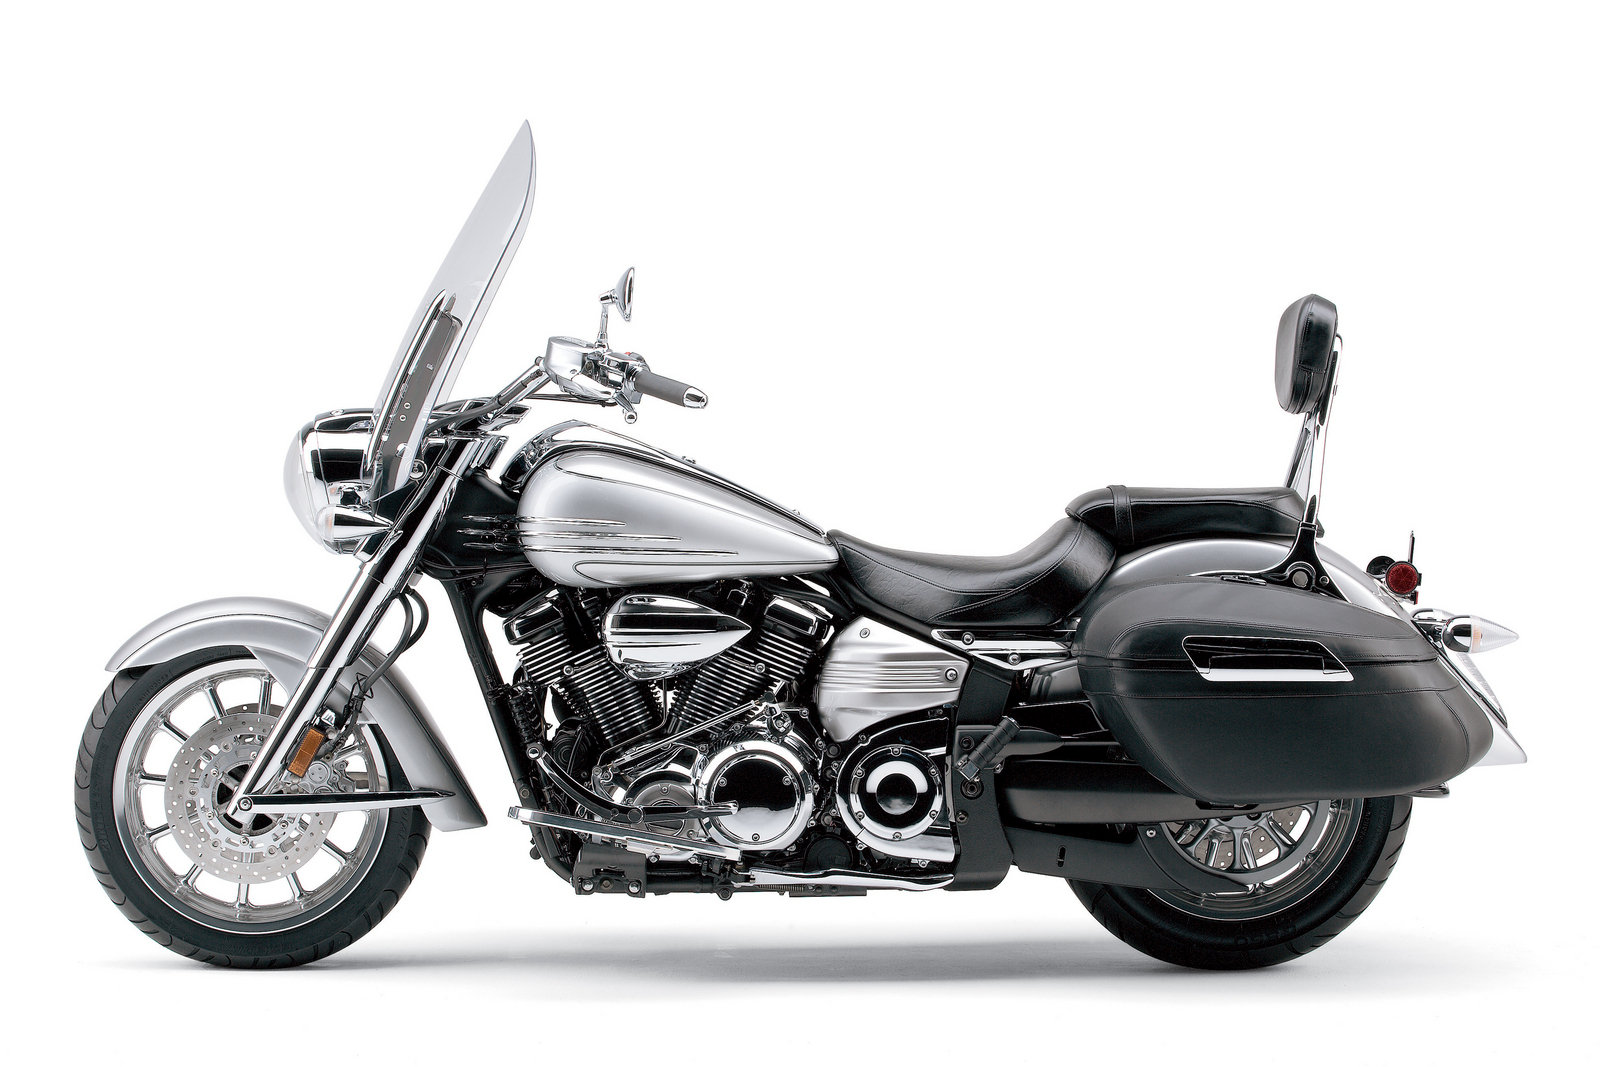 2006 yamaha stratoliner s picture 46288 motorcycle for 2006 yamaha stratoliner review